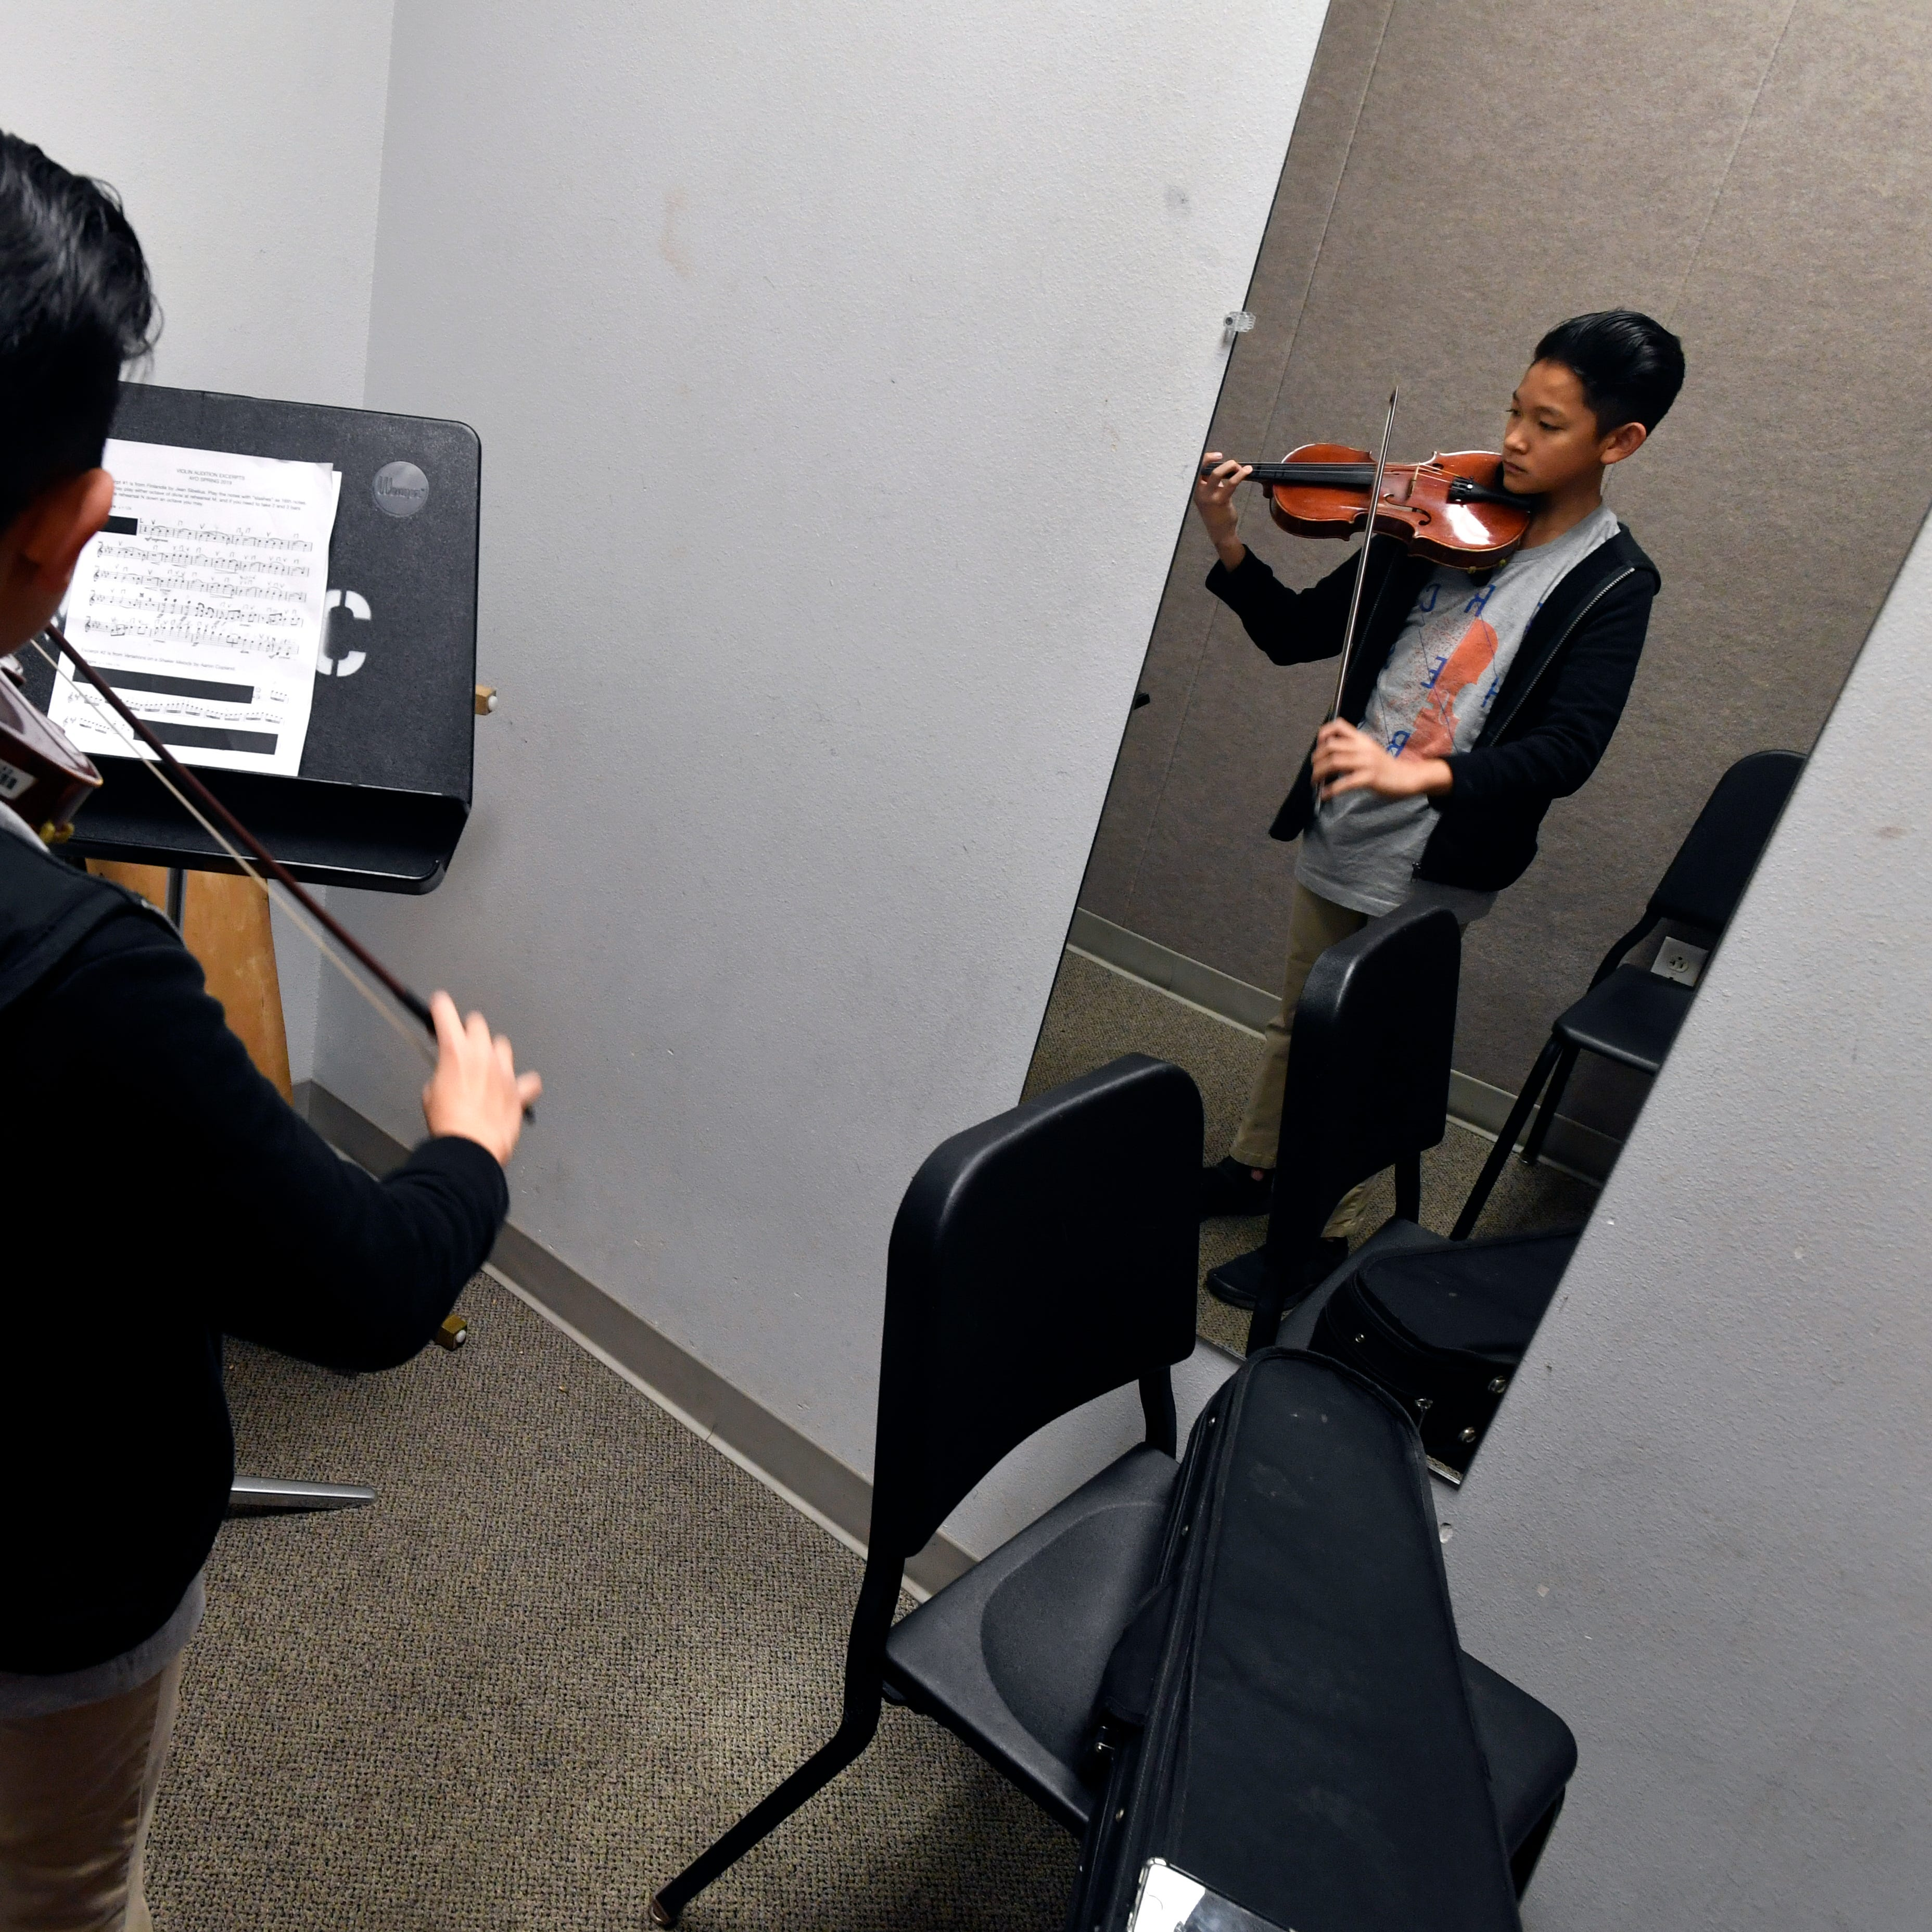 Abilene Youth Orchestra concert hails return of classical music for young musicians